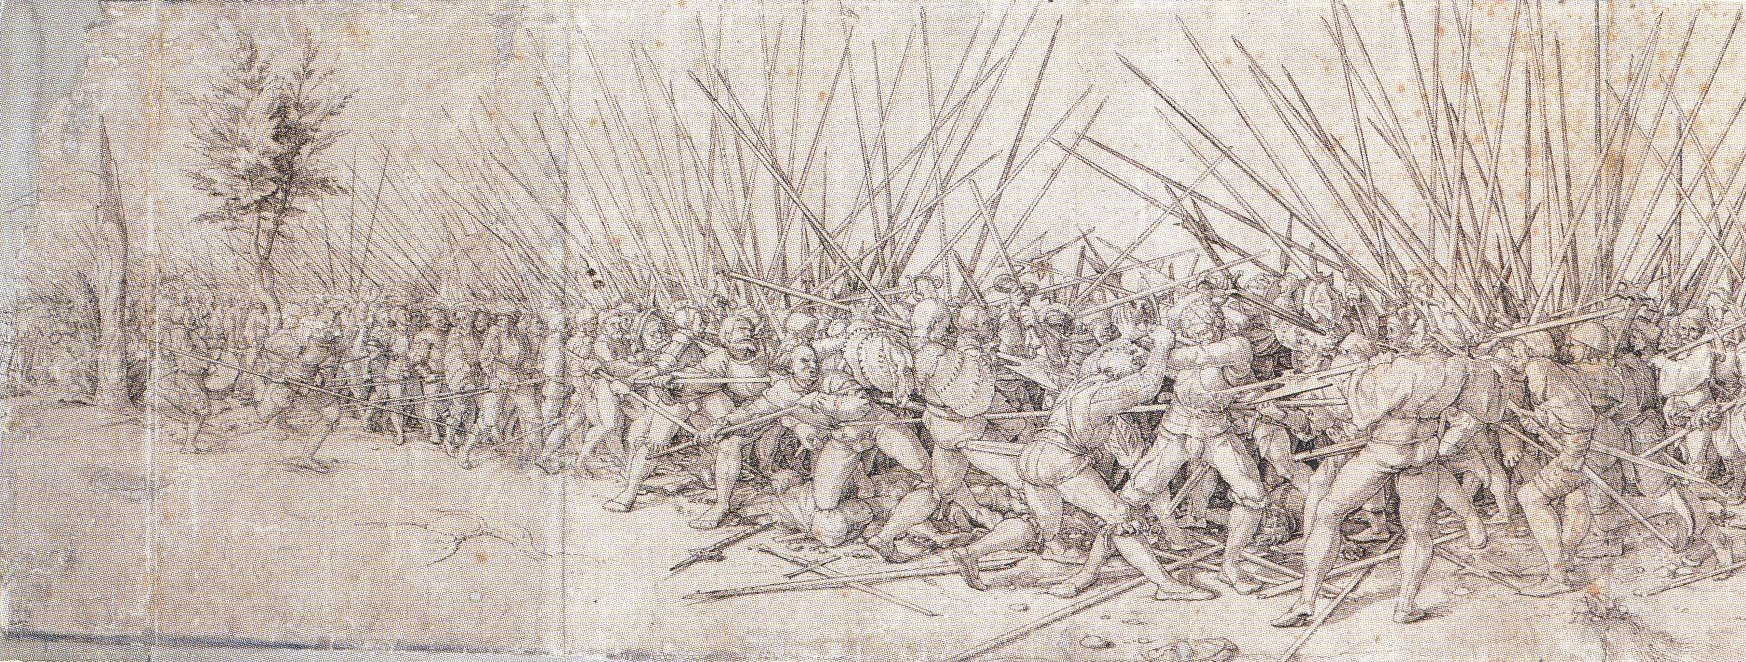 Battle_Scene%2C_after_Hans_Holbein_the_Younger.jpg